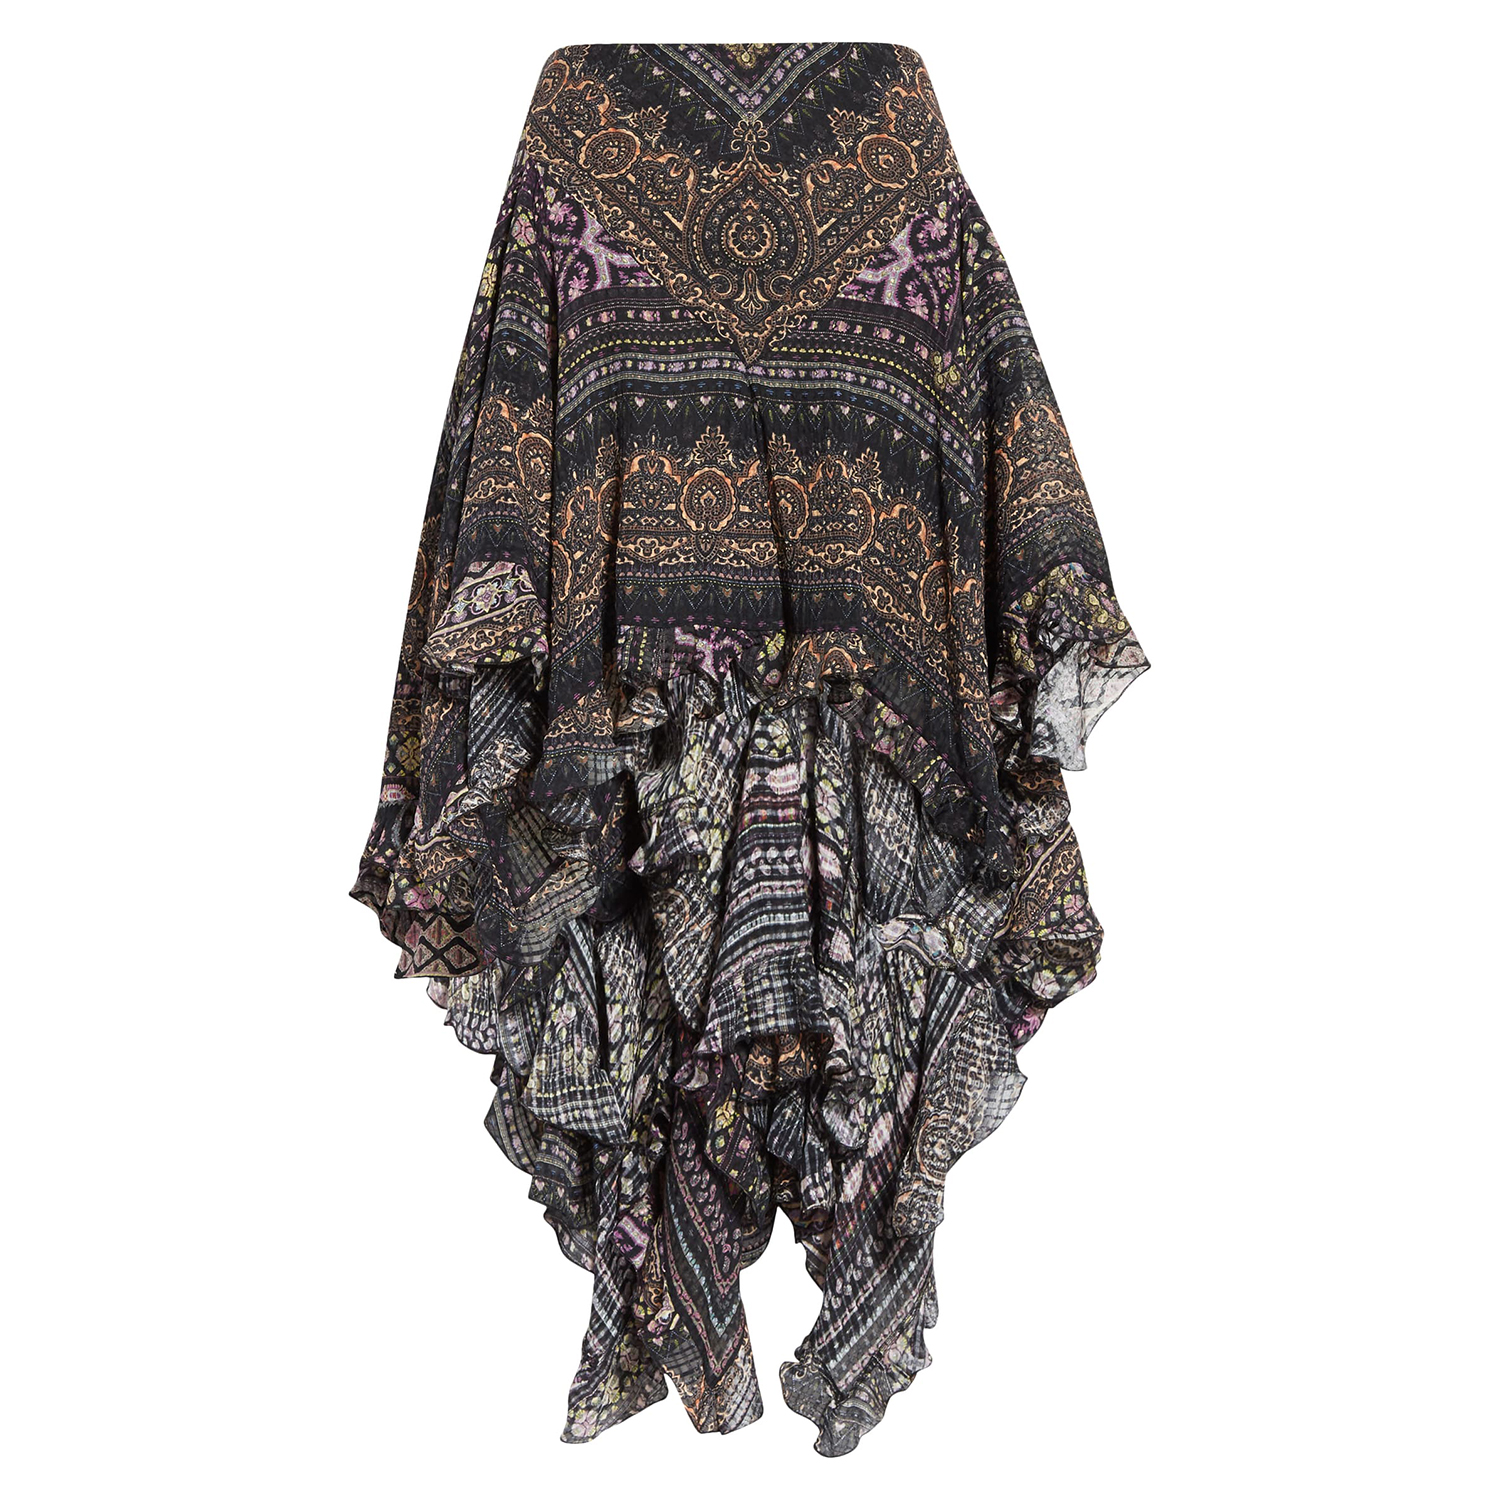 ETRO Clothing in Nordstrom